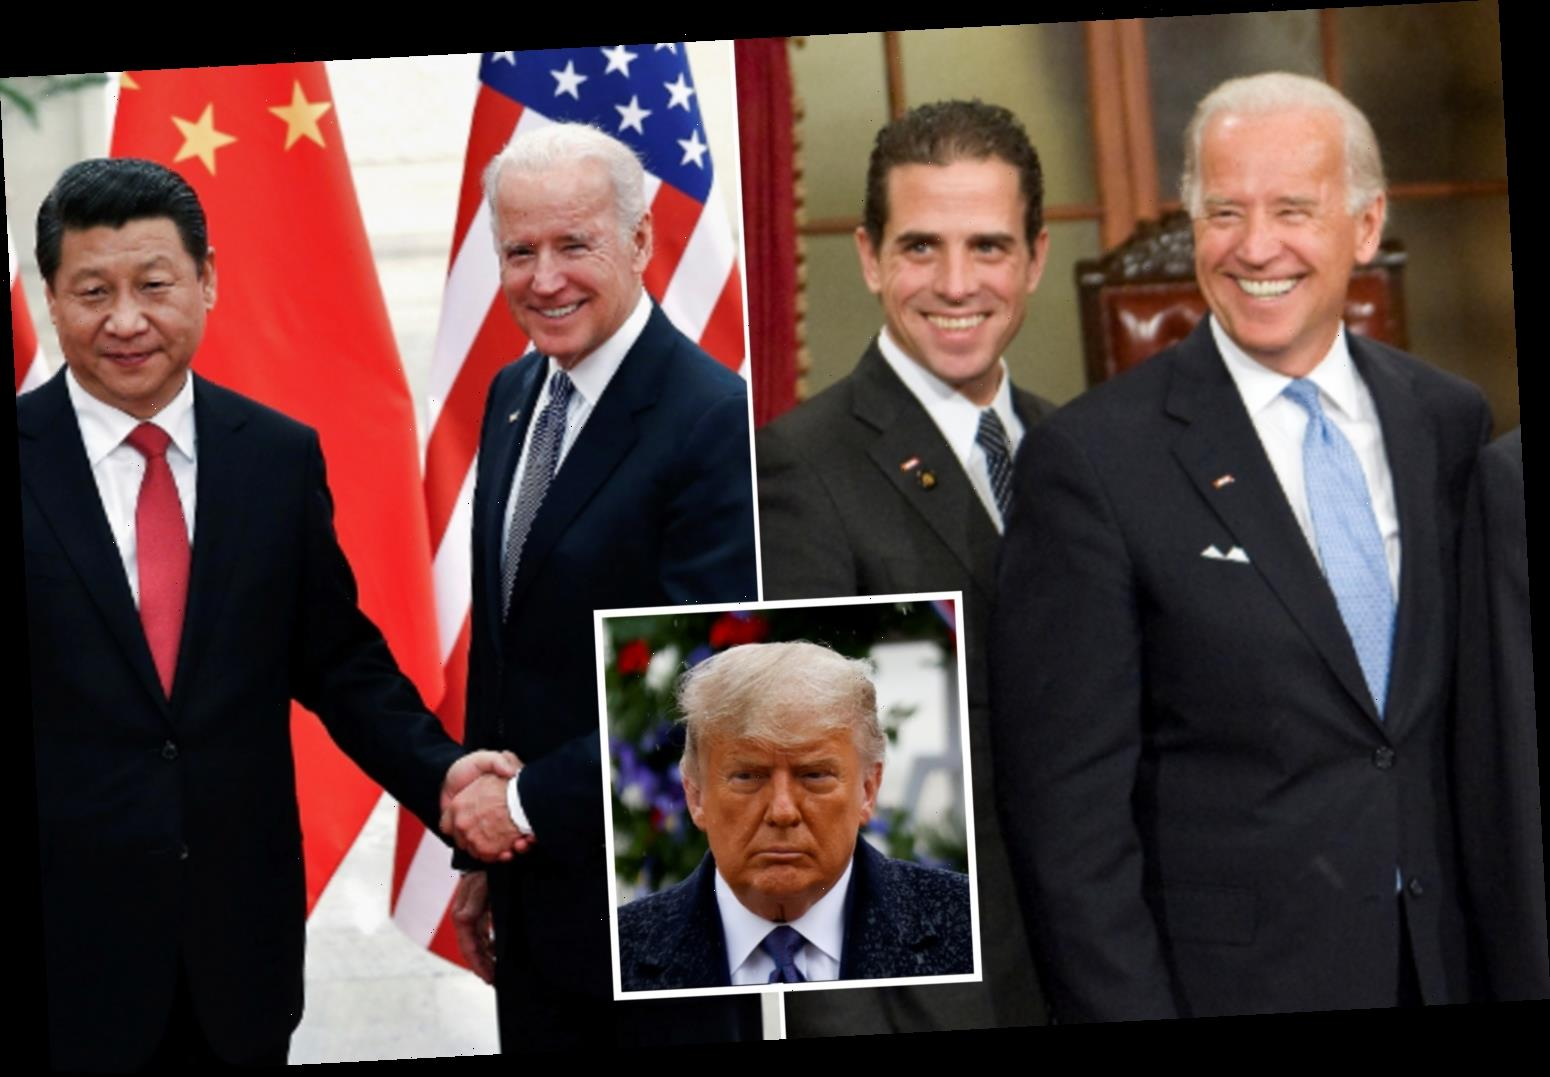 China congratulates Biden on election win after accusations Hunter Biden and Joe 'secretly took cash from China leaders'